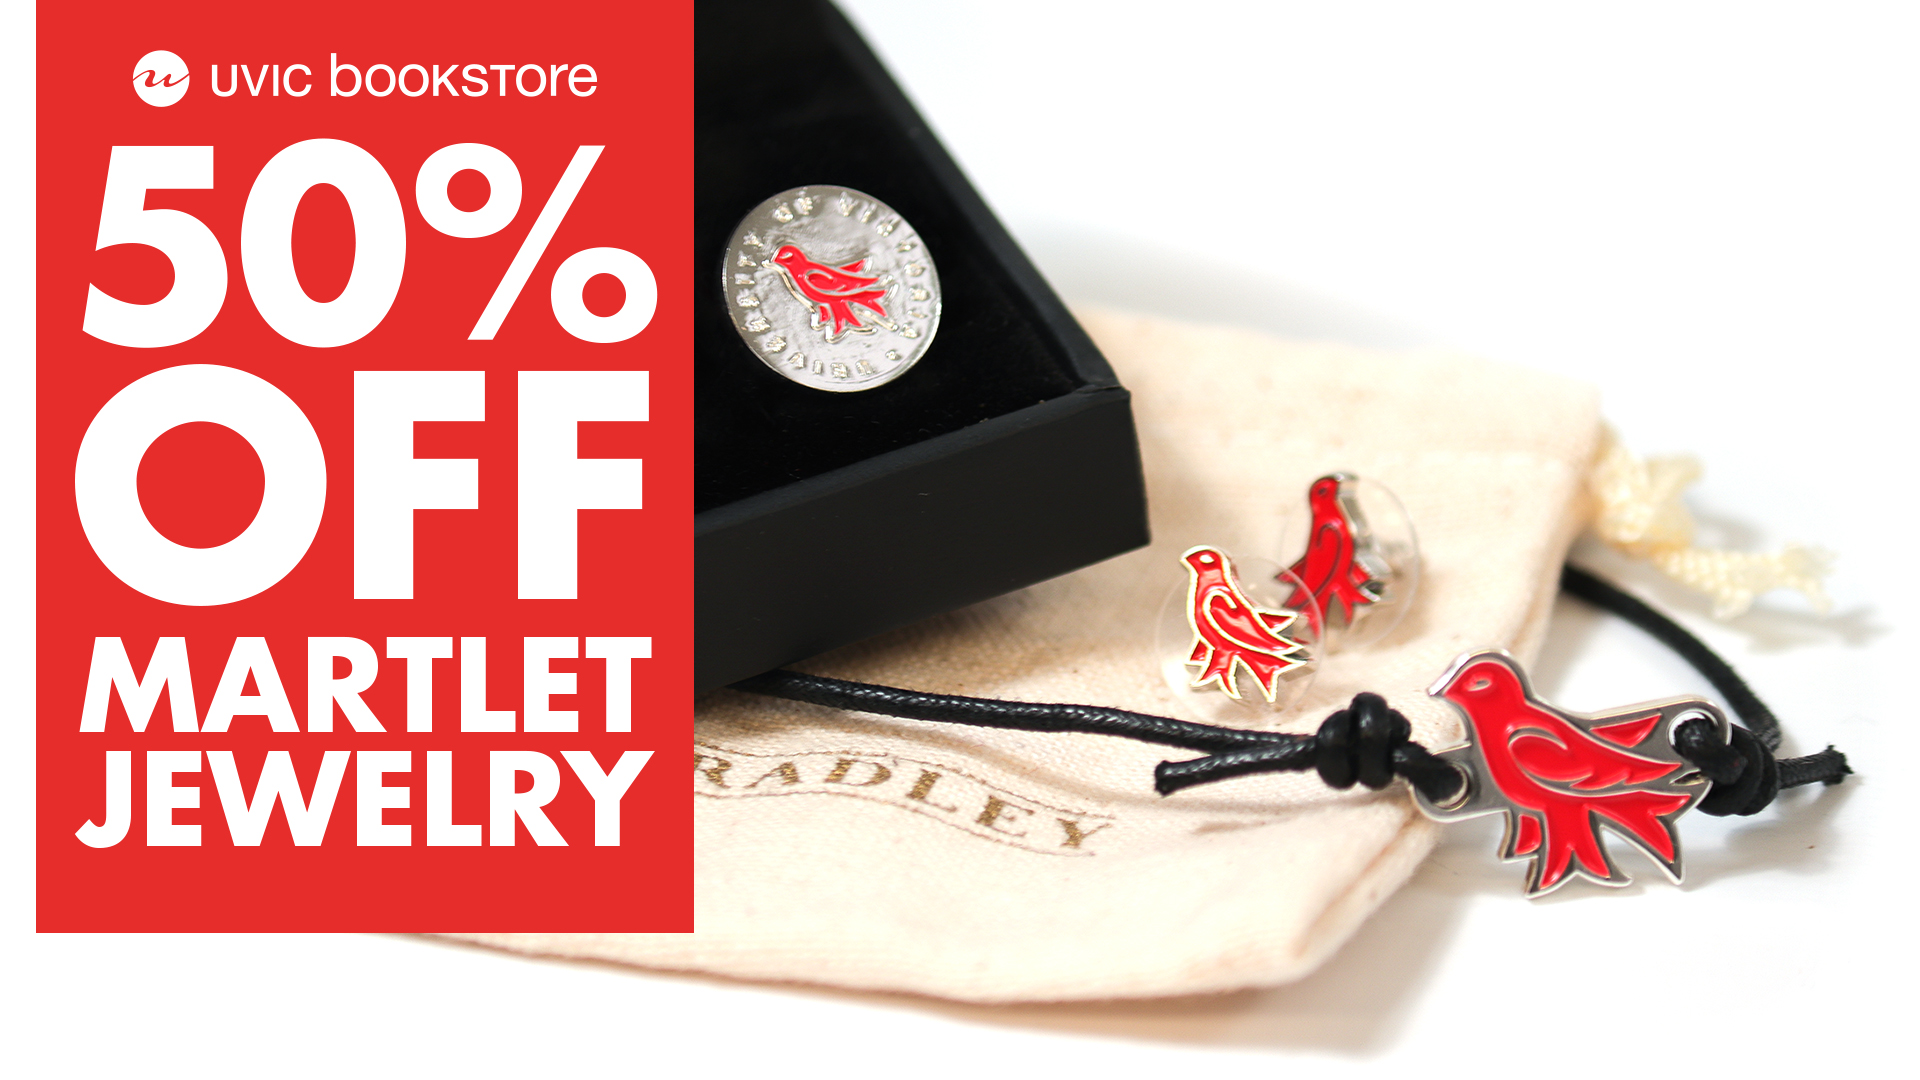 Martlet Jewelry Discount